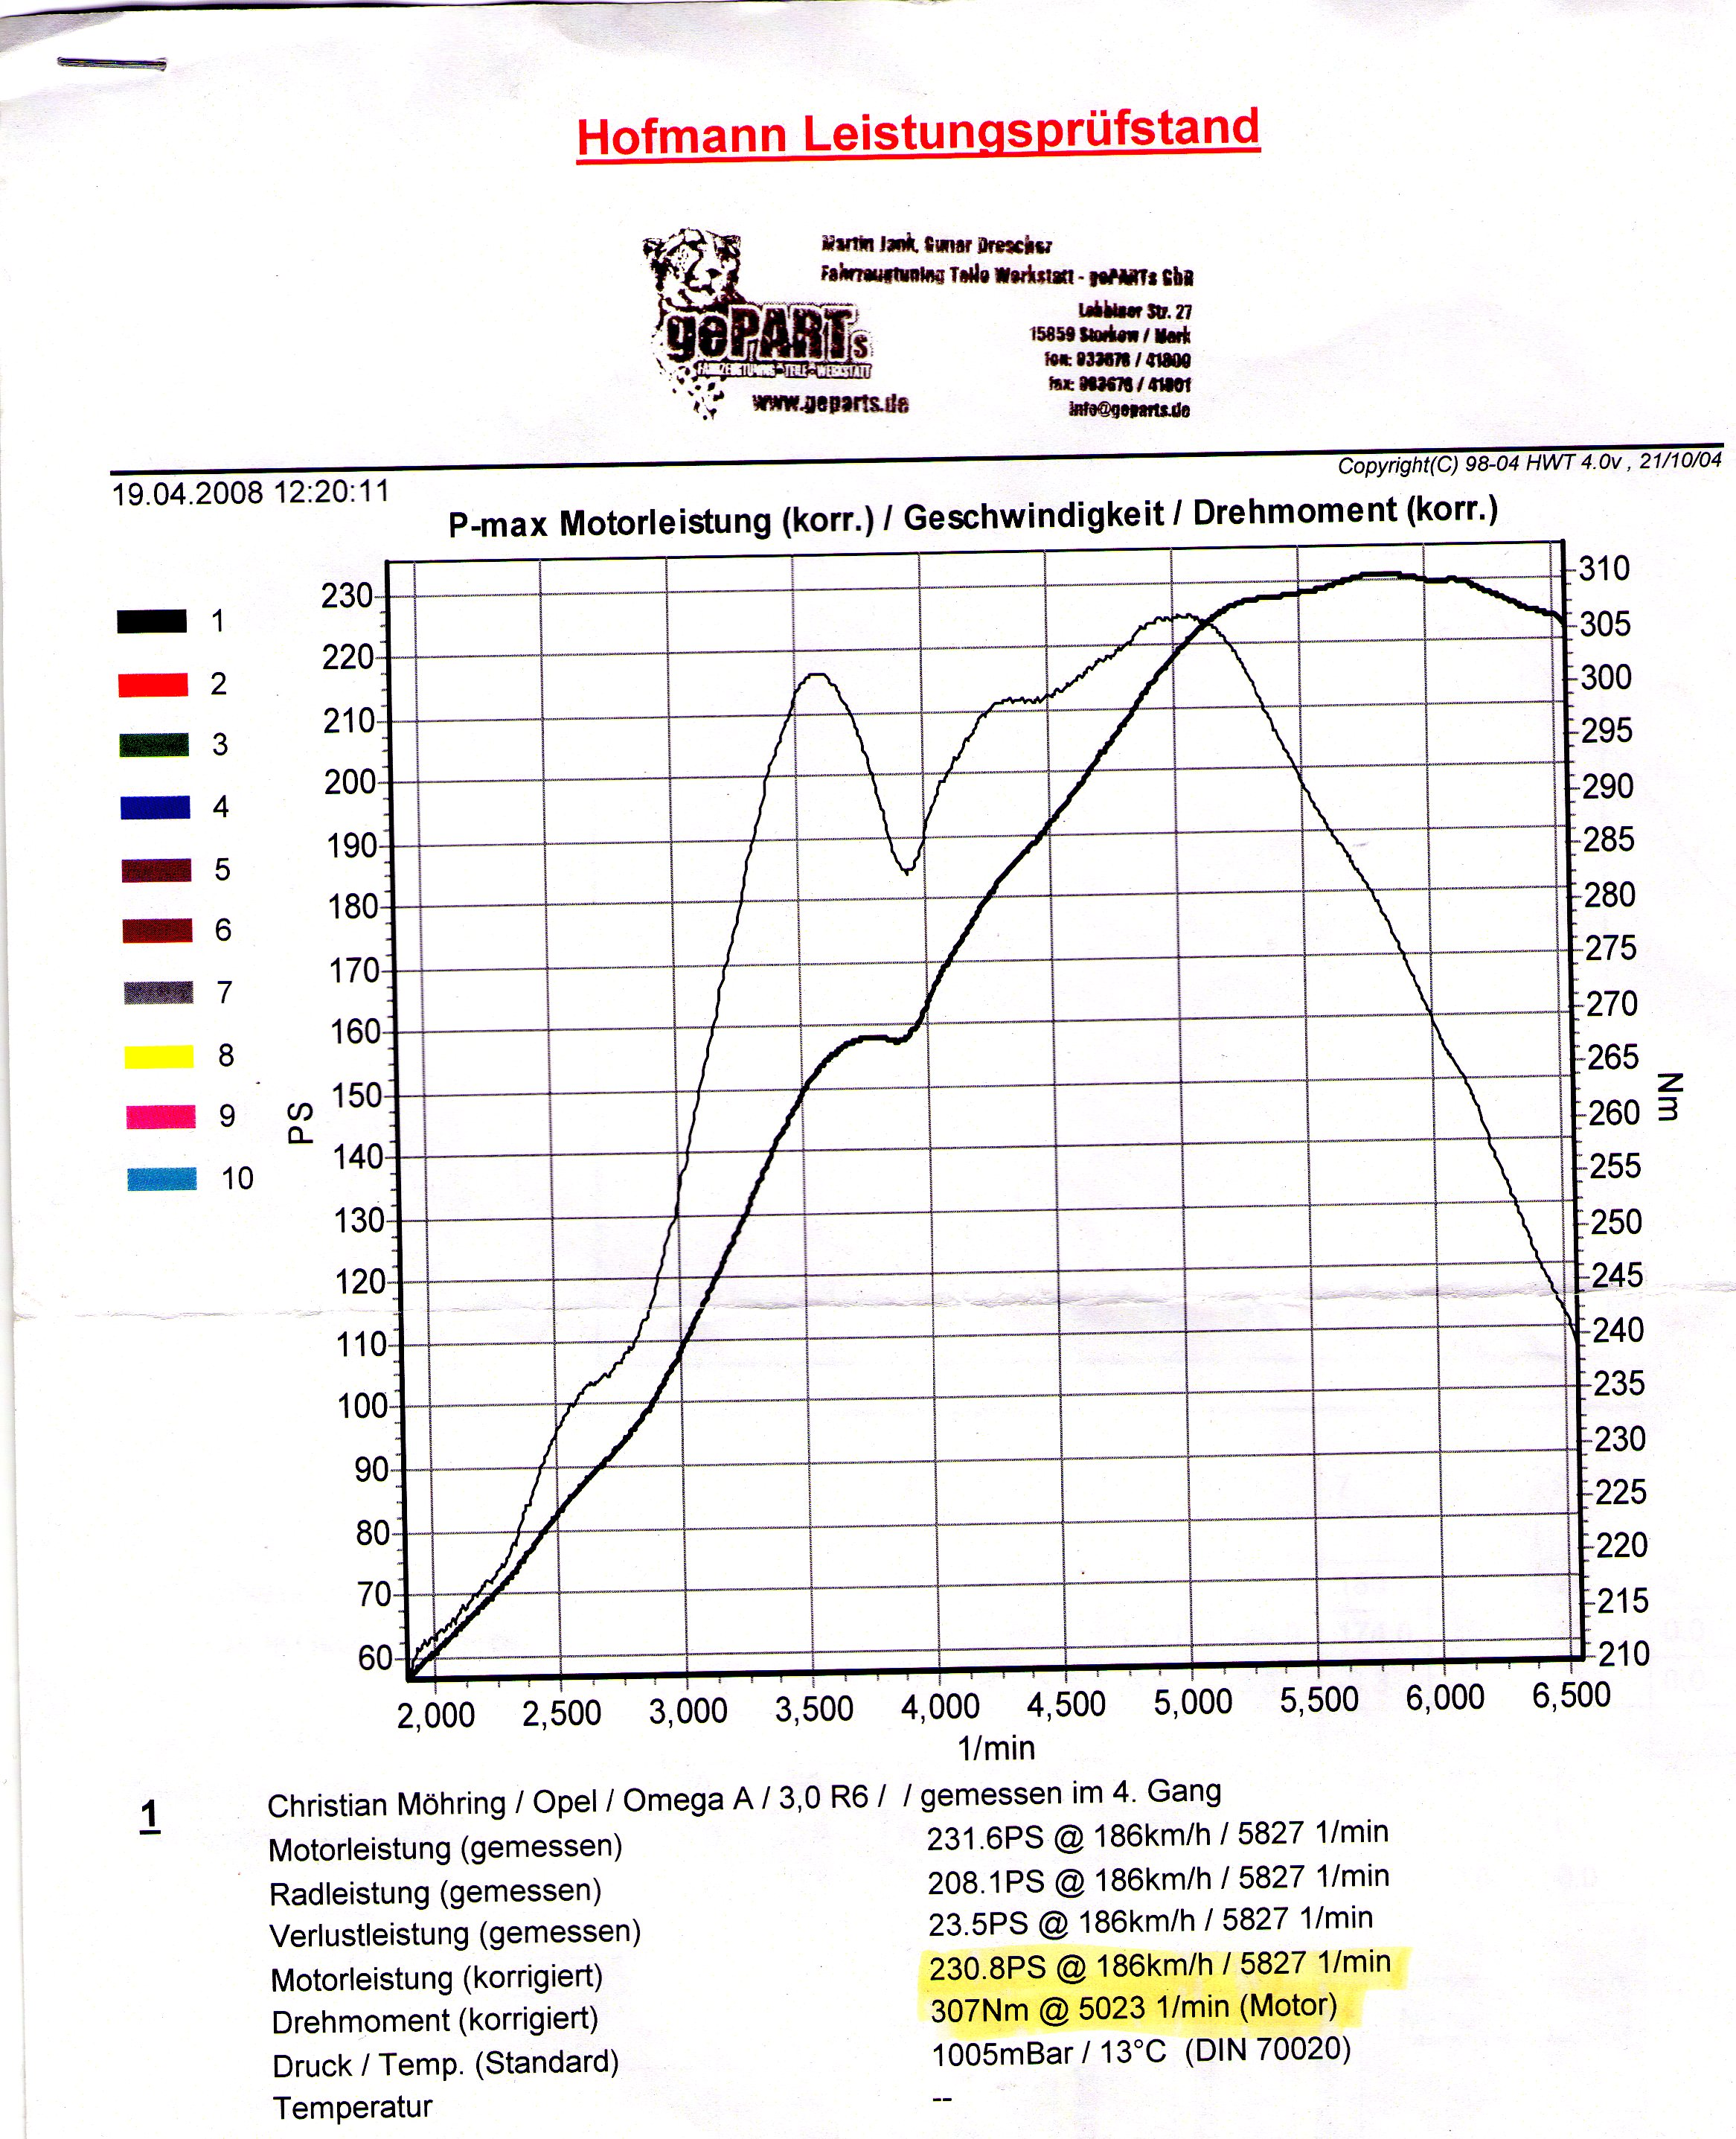 Opel Omega Omega 24v 1 4 Mile Drag Racing